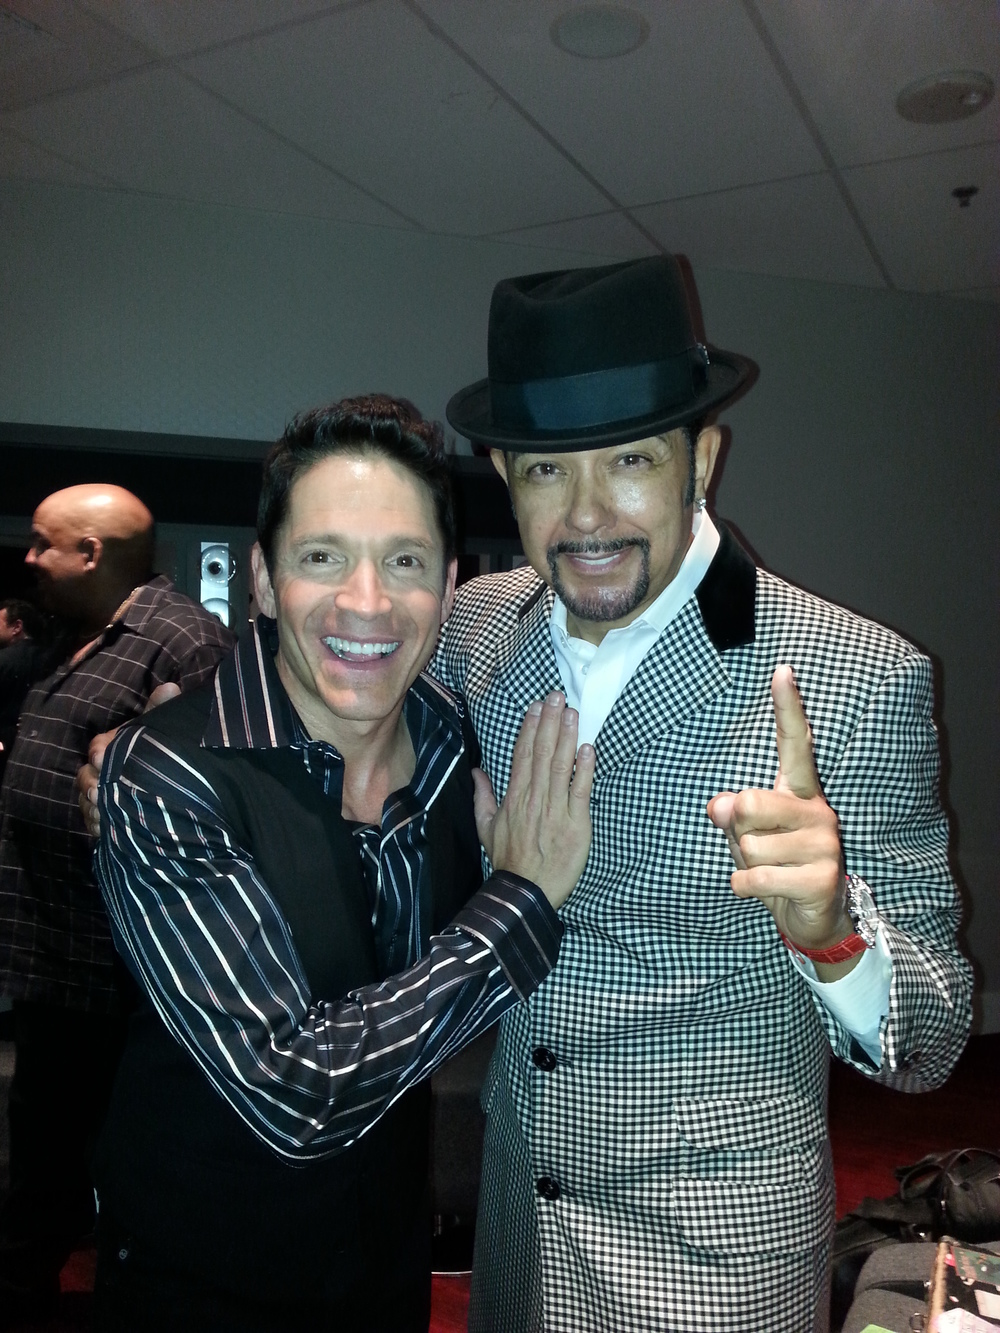 DAVE KOZ, JD AND GERALD ALBRIGHT IN THE BACKGROUND BACKSTAGE AFTER DAVE'S SHOW IN LAS VEGAS 2013.jpg